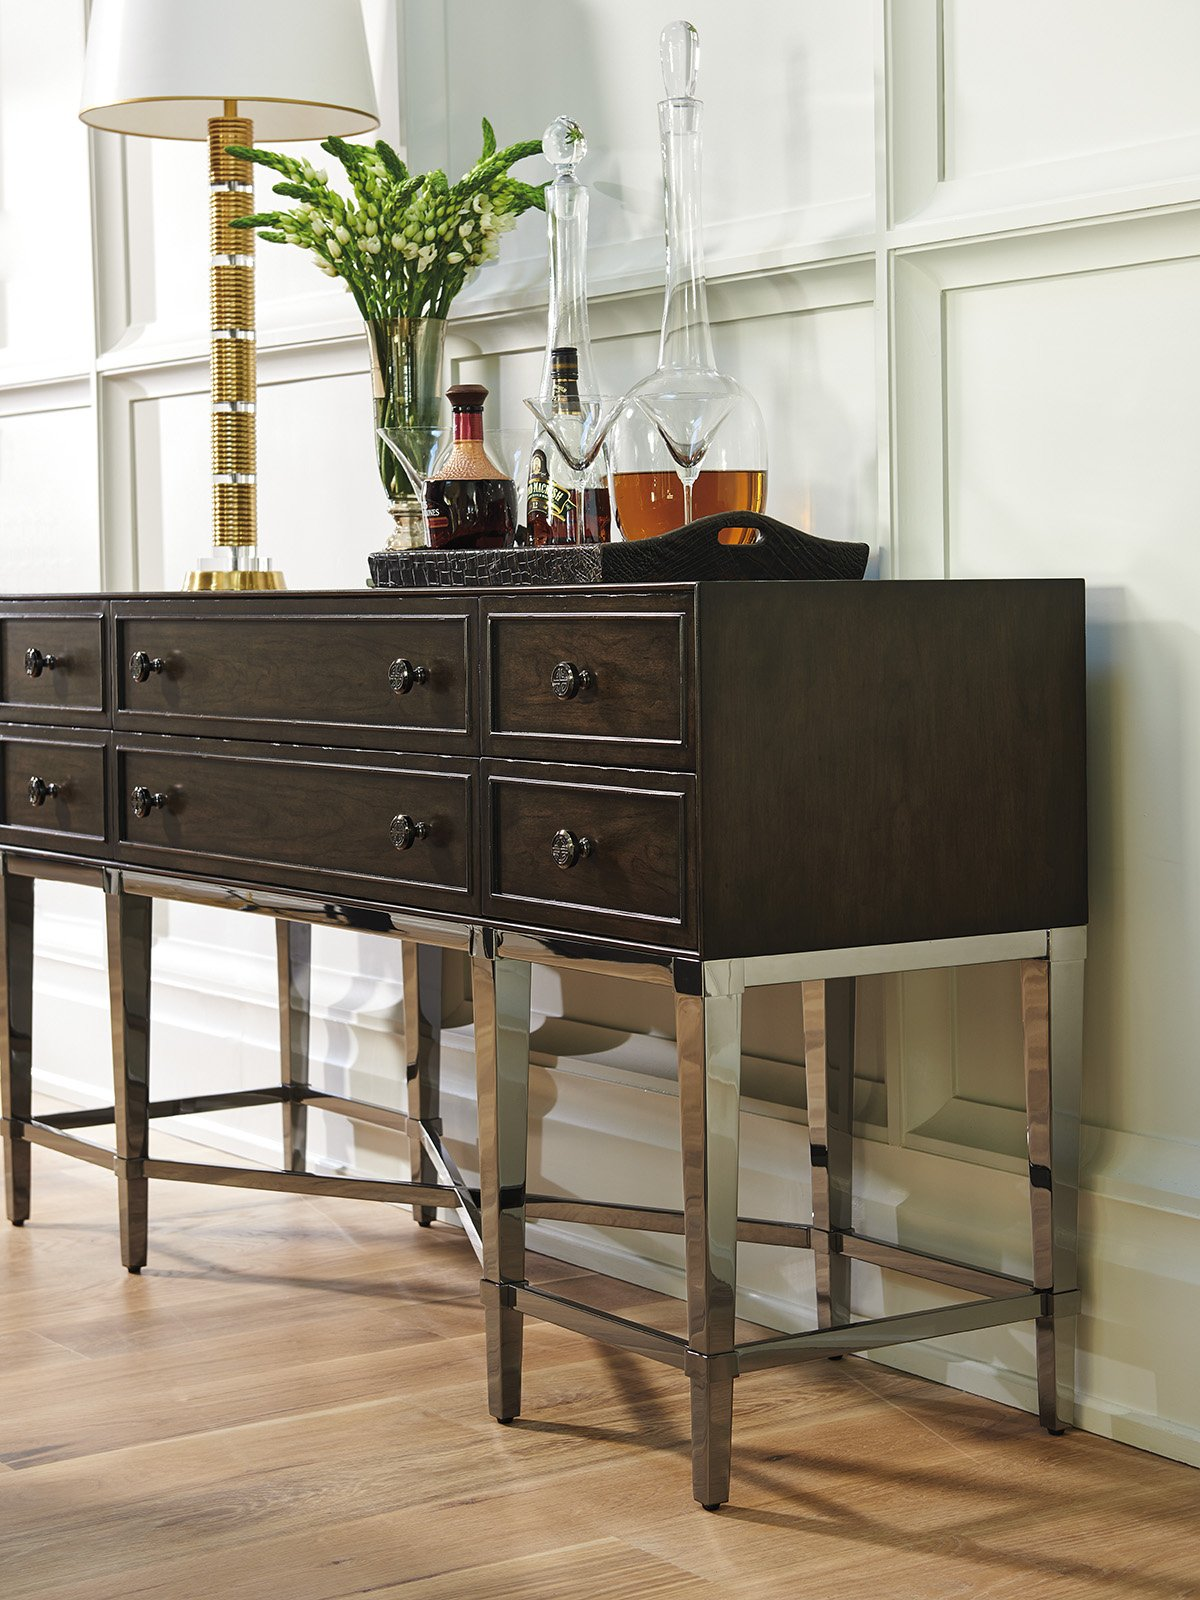 Fairfax Sideboard by shopbarclaybutera